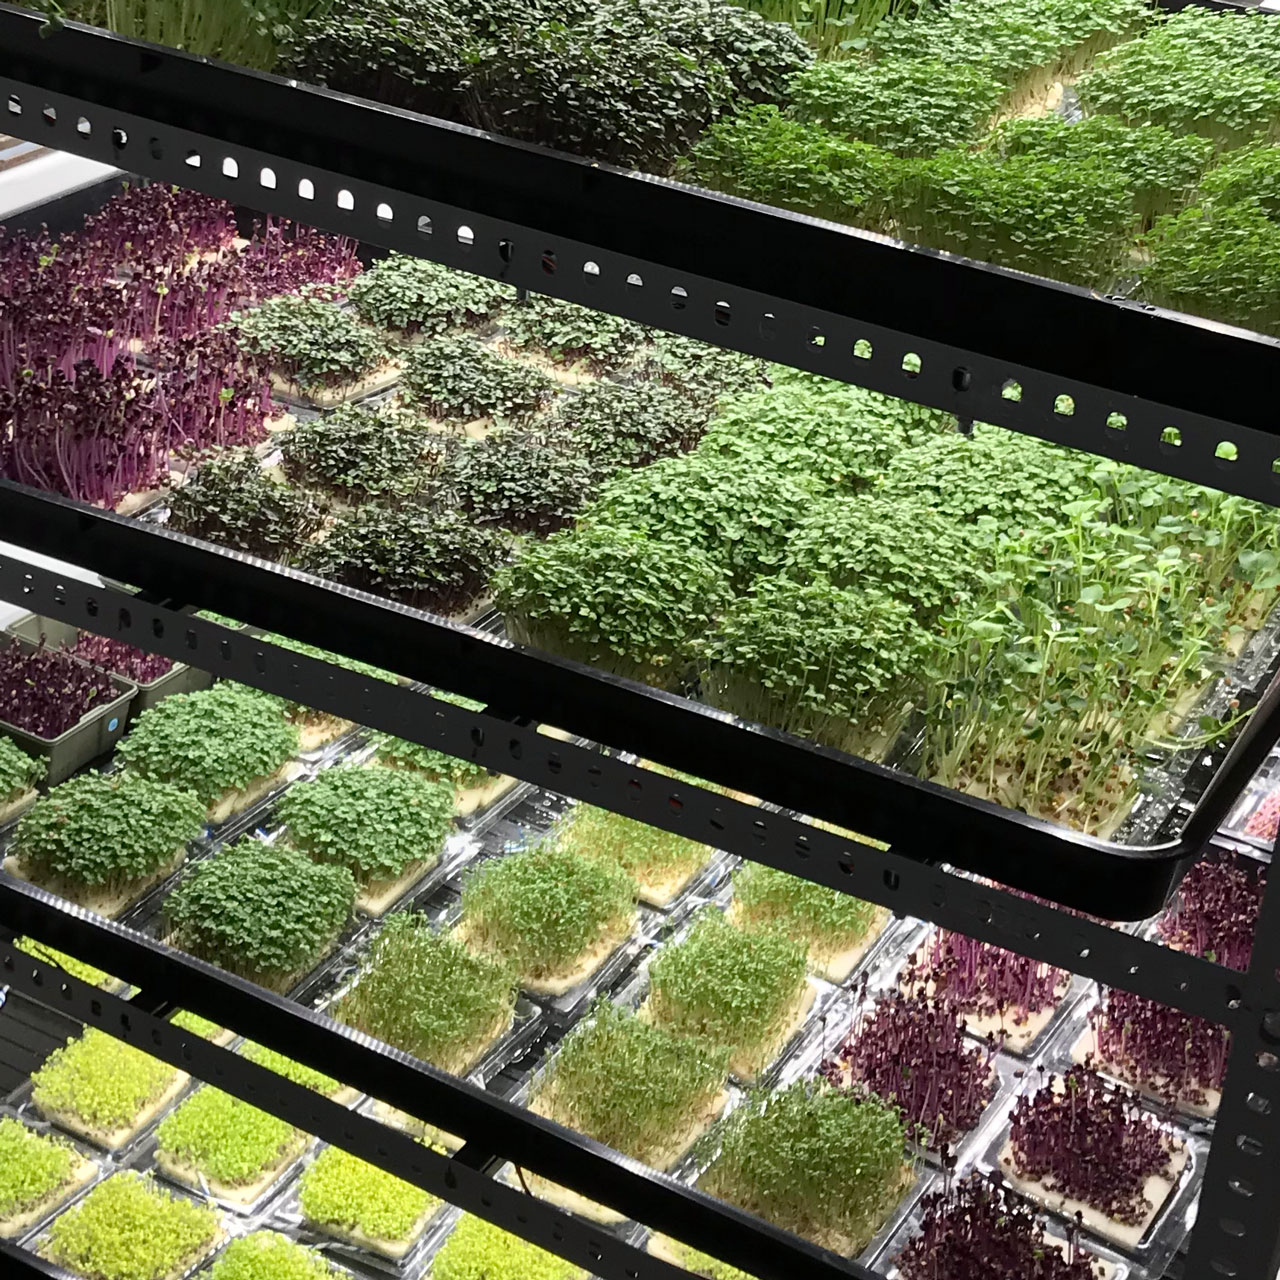 InstaGreen cultivation system with layers of beautiful microgreens